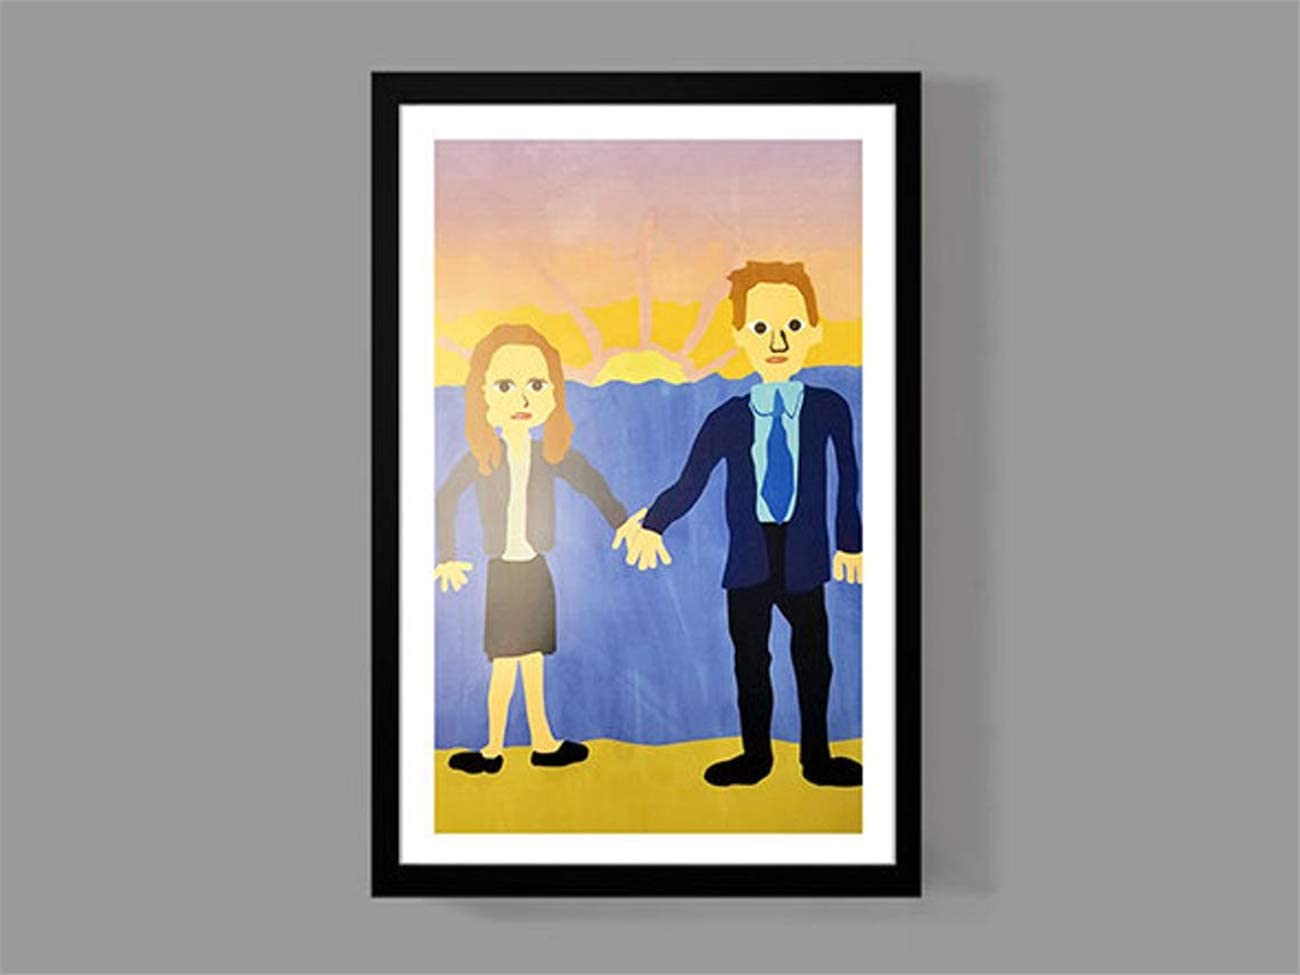 NATVVA The Office Jim and Pam Wedding Poster Funny The Office Prints Canvas Pictures Paintings on Canvas Wall Art for Home Decor Painting Picture Artwork No Frame Funny Gift